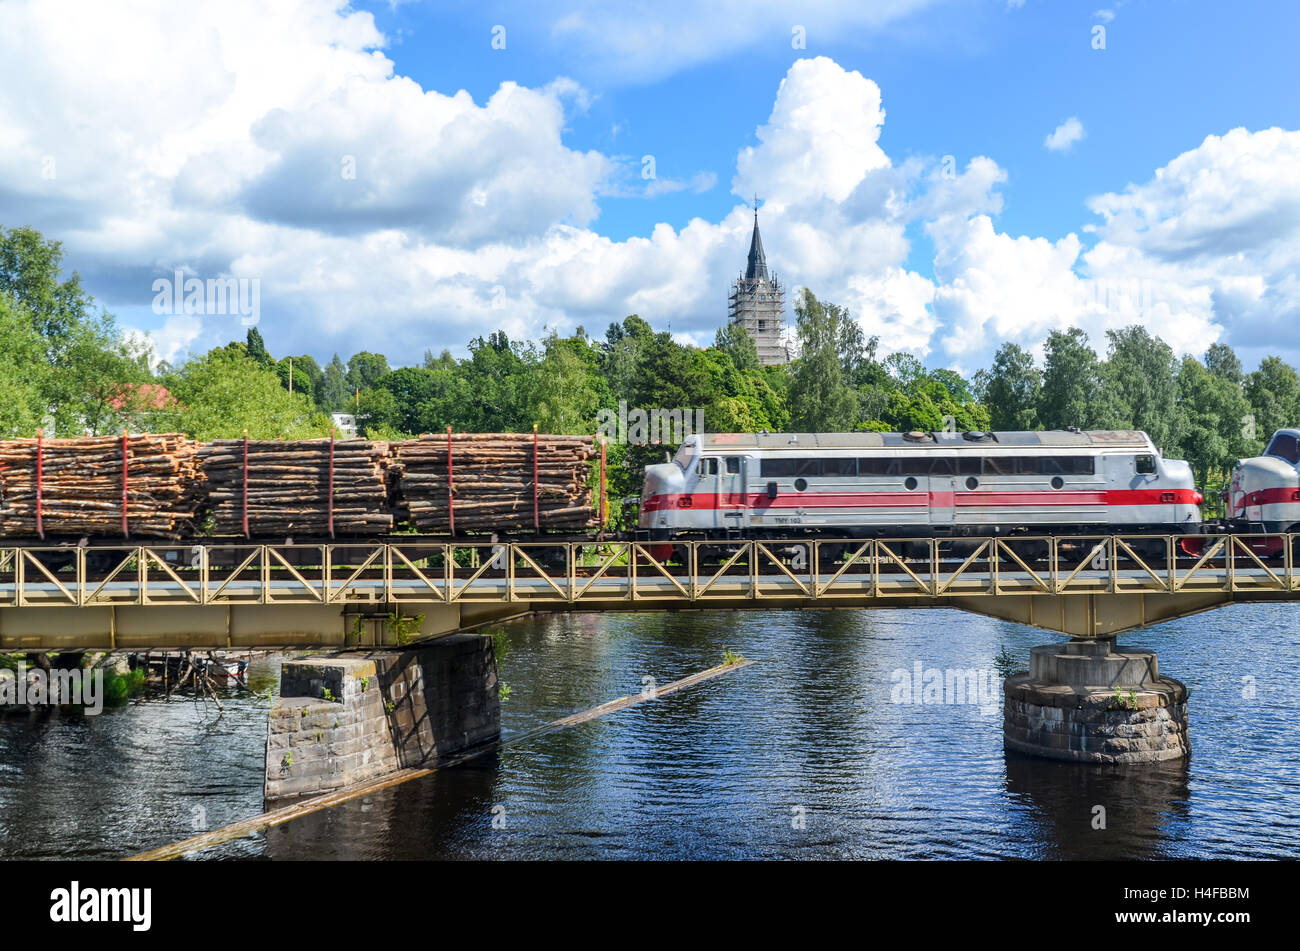 Train transporting wood logs in Sunne, Sweden. Wood is one of the main exports of Sweden - Stock Image